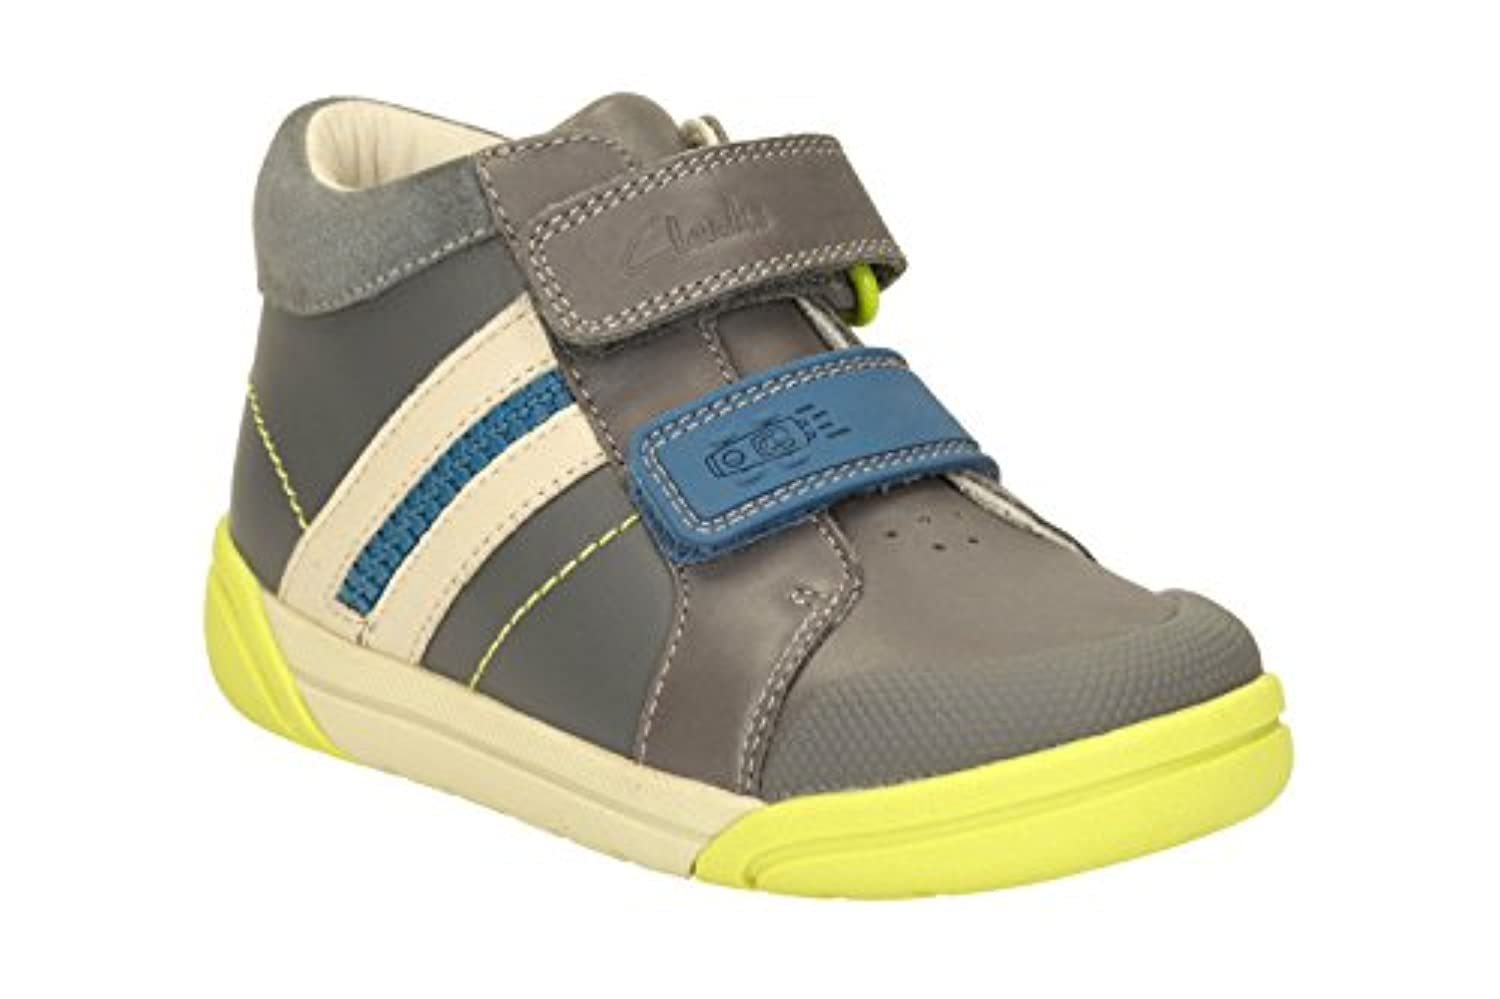 Clarks Boys Out-Of-School Lilfolkmac Pre Leather Boots In Grey Standard Fit Size 8